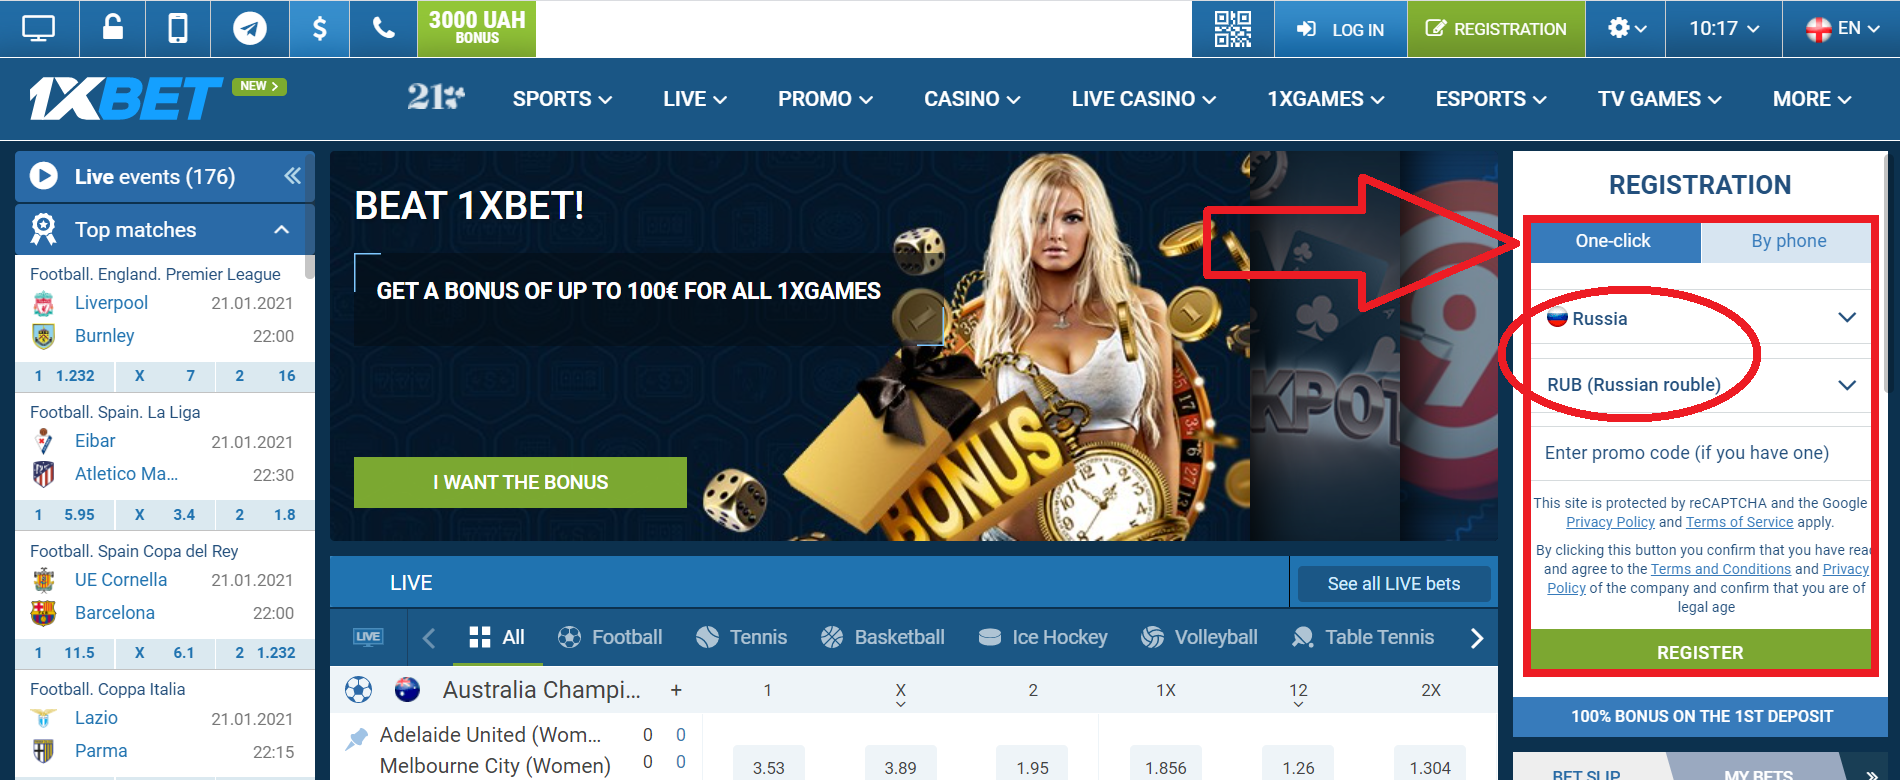 how to register 1xbet online